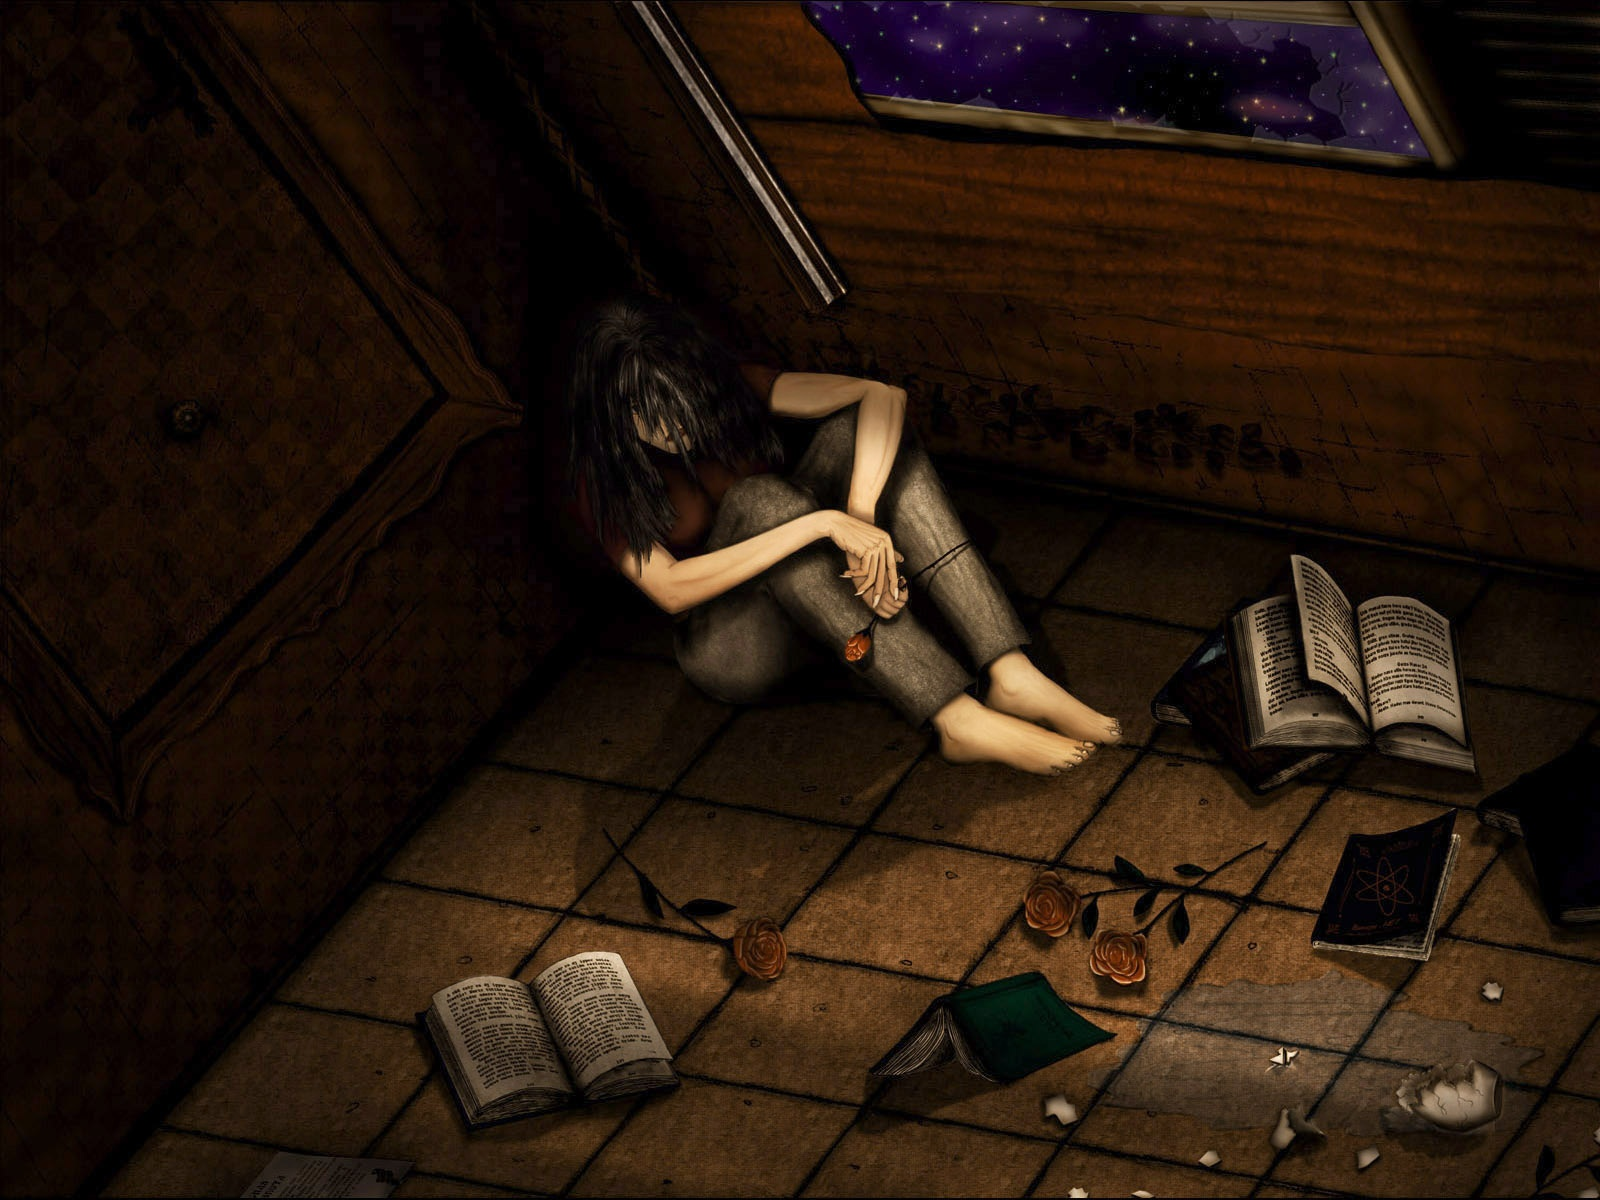 http://1.bp.blogspot.com/-uCz9GThHRJ8/TXC3DX2FMwI/AAAAAAAAGFQ/LiiQ89p39nY/s1600/Drawn_wallpapers_Loneliness_sadness-sad-boy-alone-handmade-wallpapers-1200-1600-1900-2100-2200-high-quality%252Bwallpapers-jago-dunya-lucy-pinder-nude-sexy-.jpg